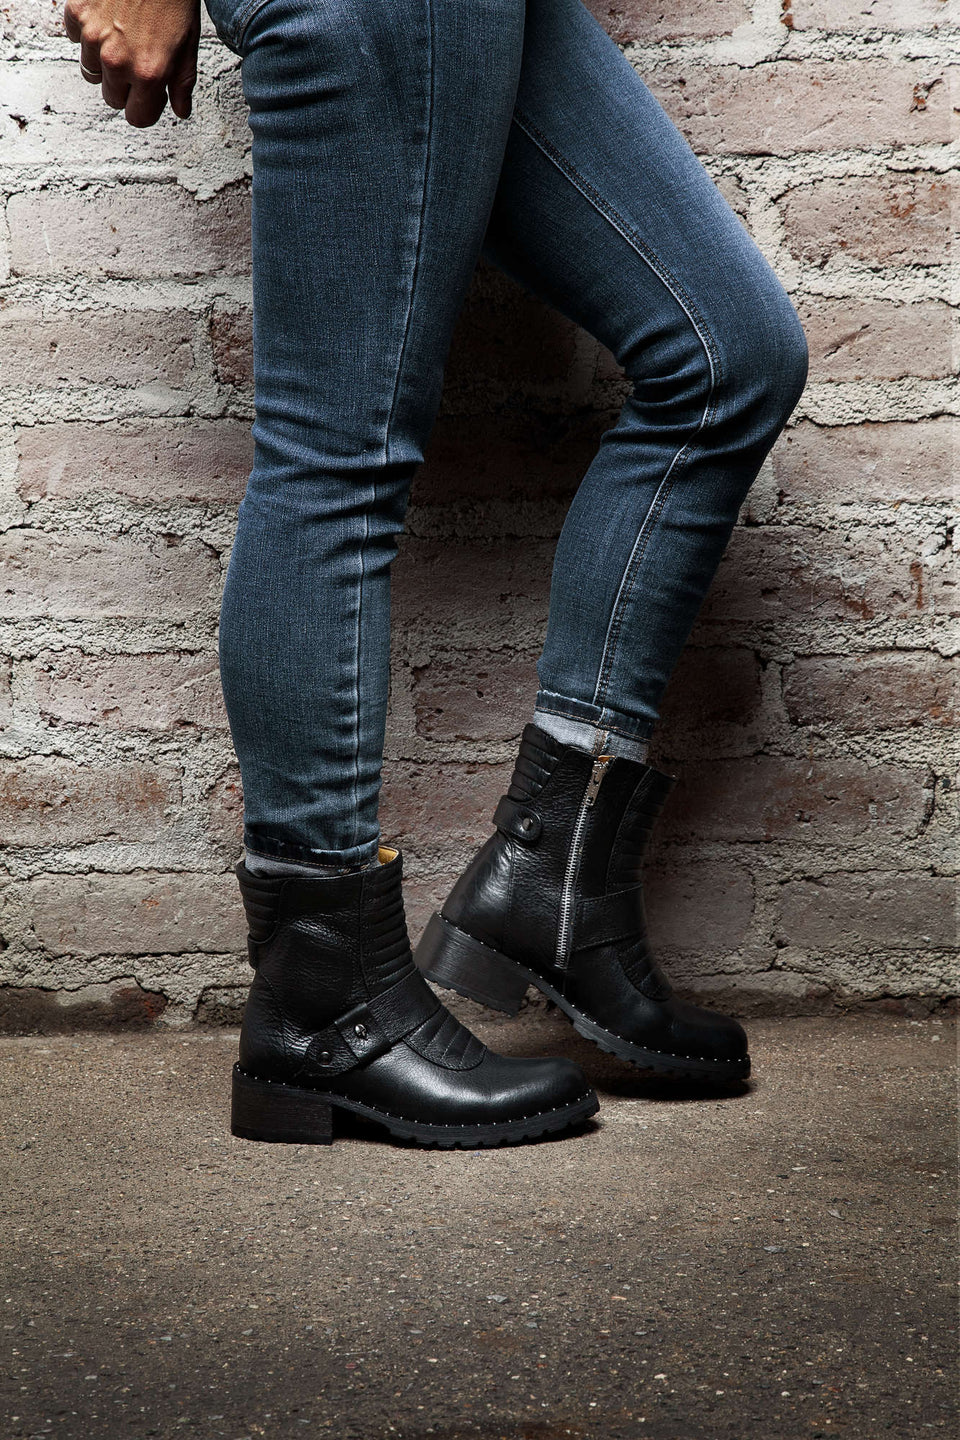 Black Women Motorcycle Boots By Umberto Luce